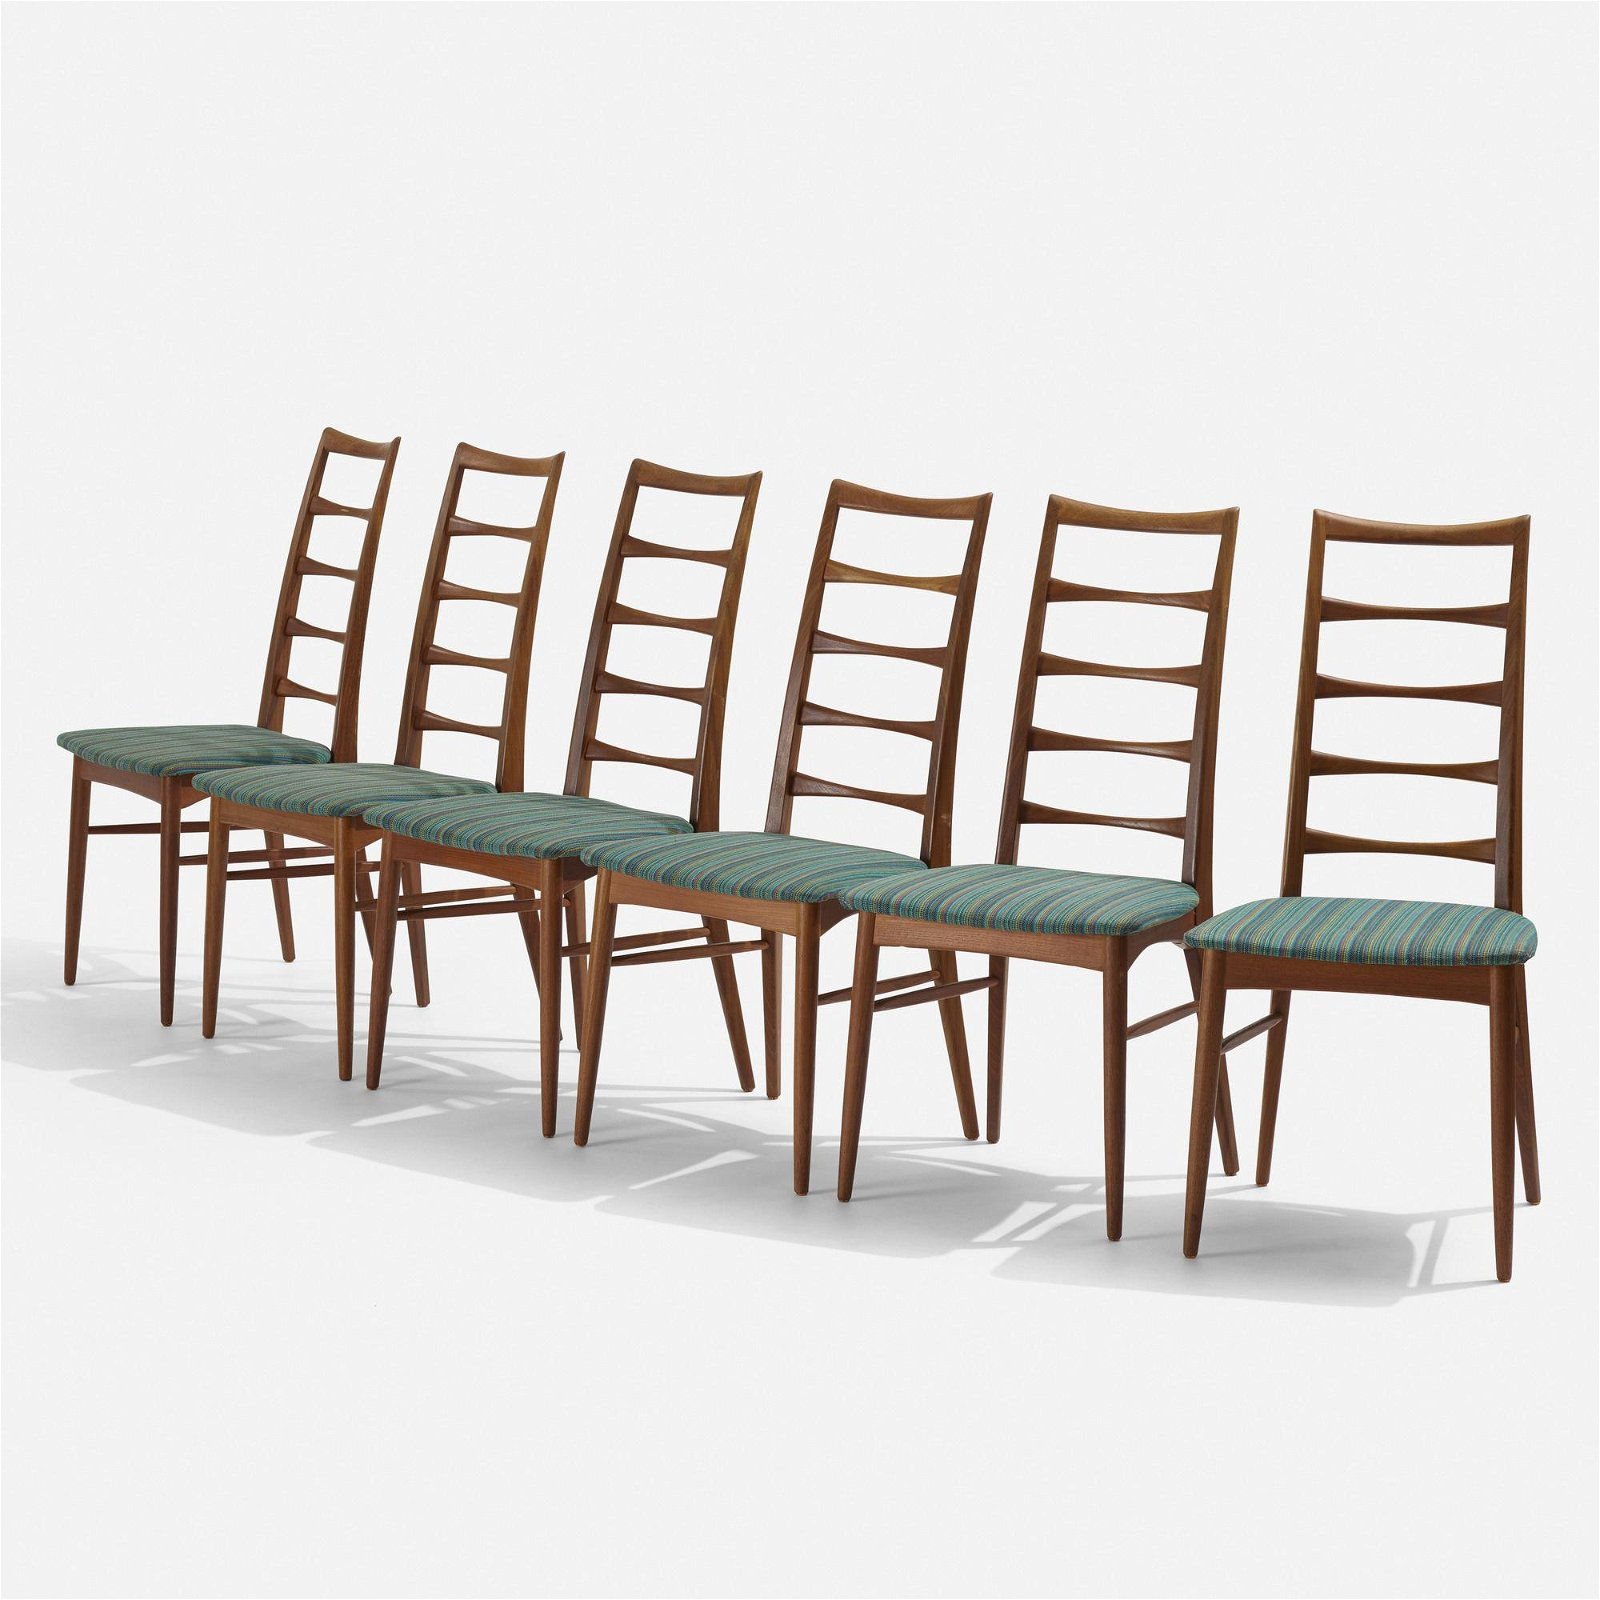 Niels Koefoed, Lis dining chairs, set of six